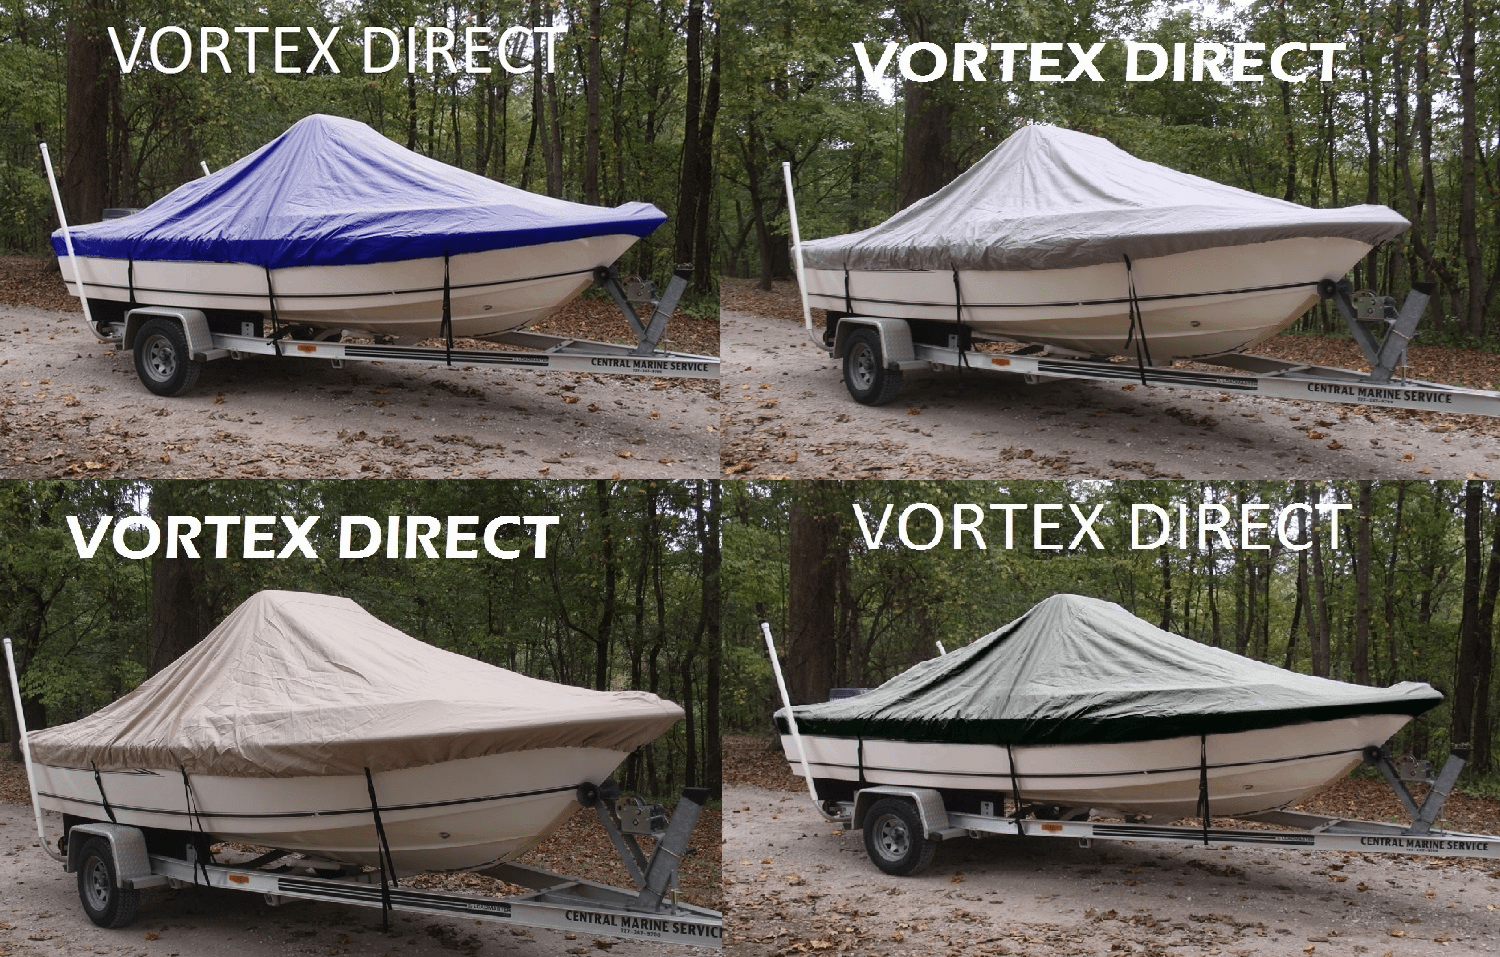 "VORTEX HEAVY DUTY CENTER CONSOLE BOAT COVER FOR 16'7"" - 17'6"" BOAT ( FAST SHIPPING - 1 TO  4 BUSINESS DAY DELIVERY )"